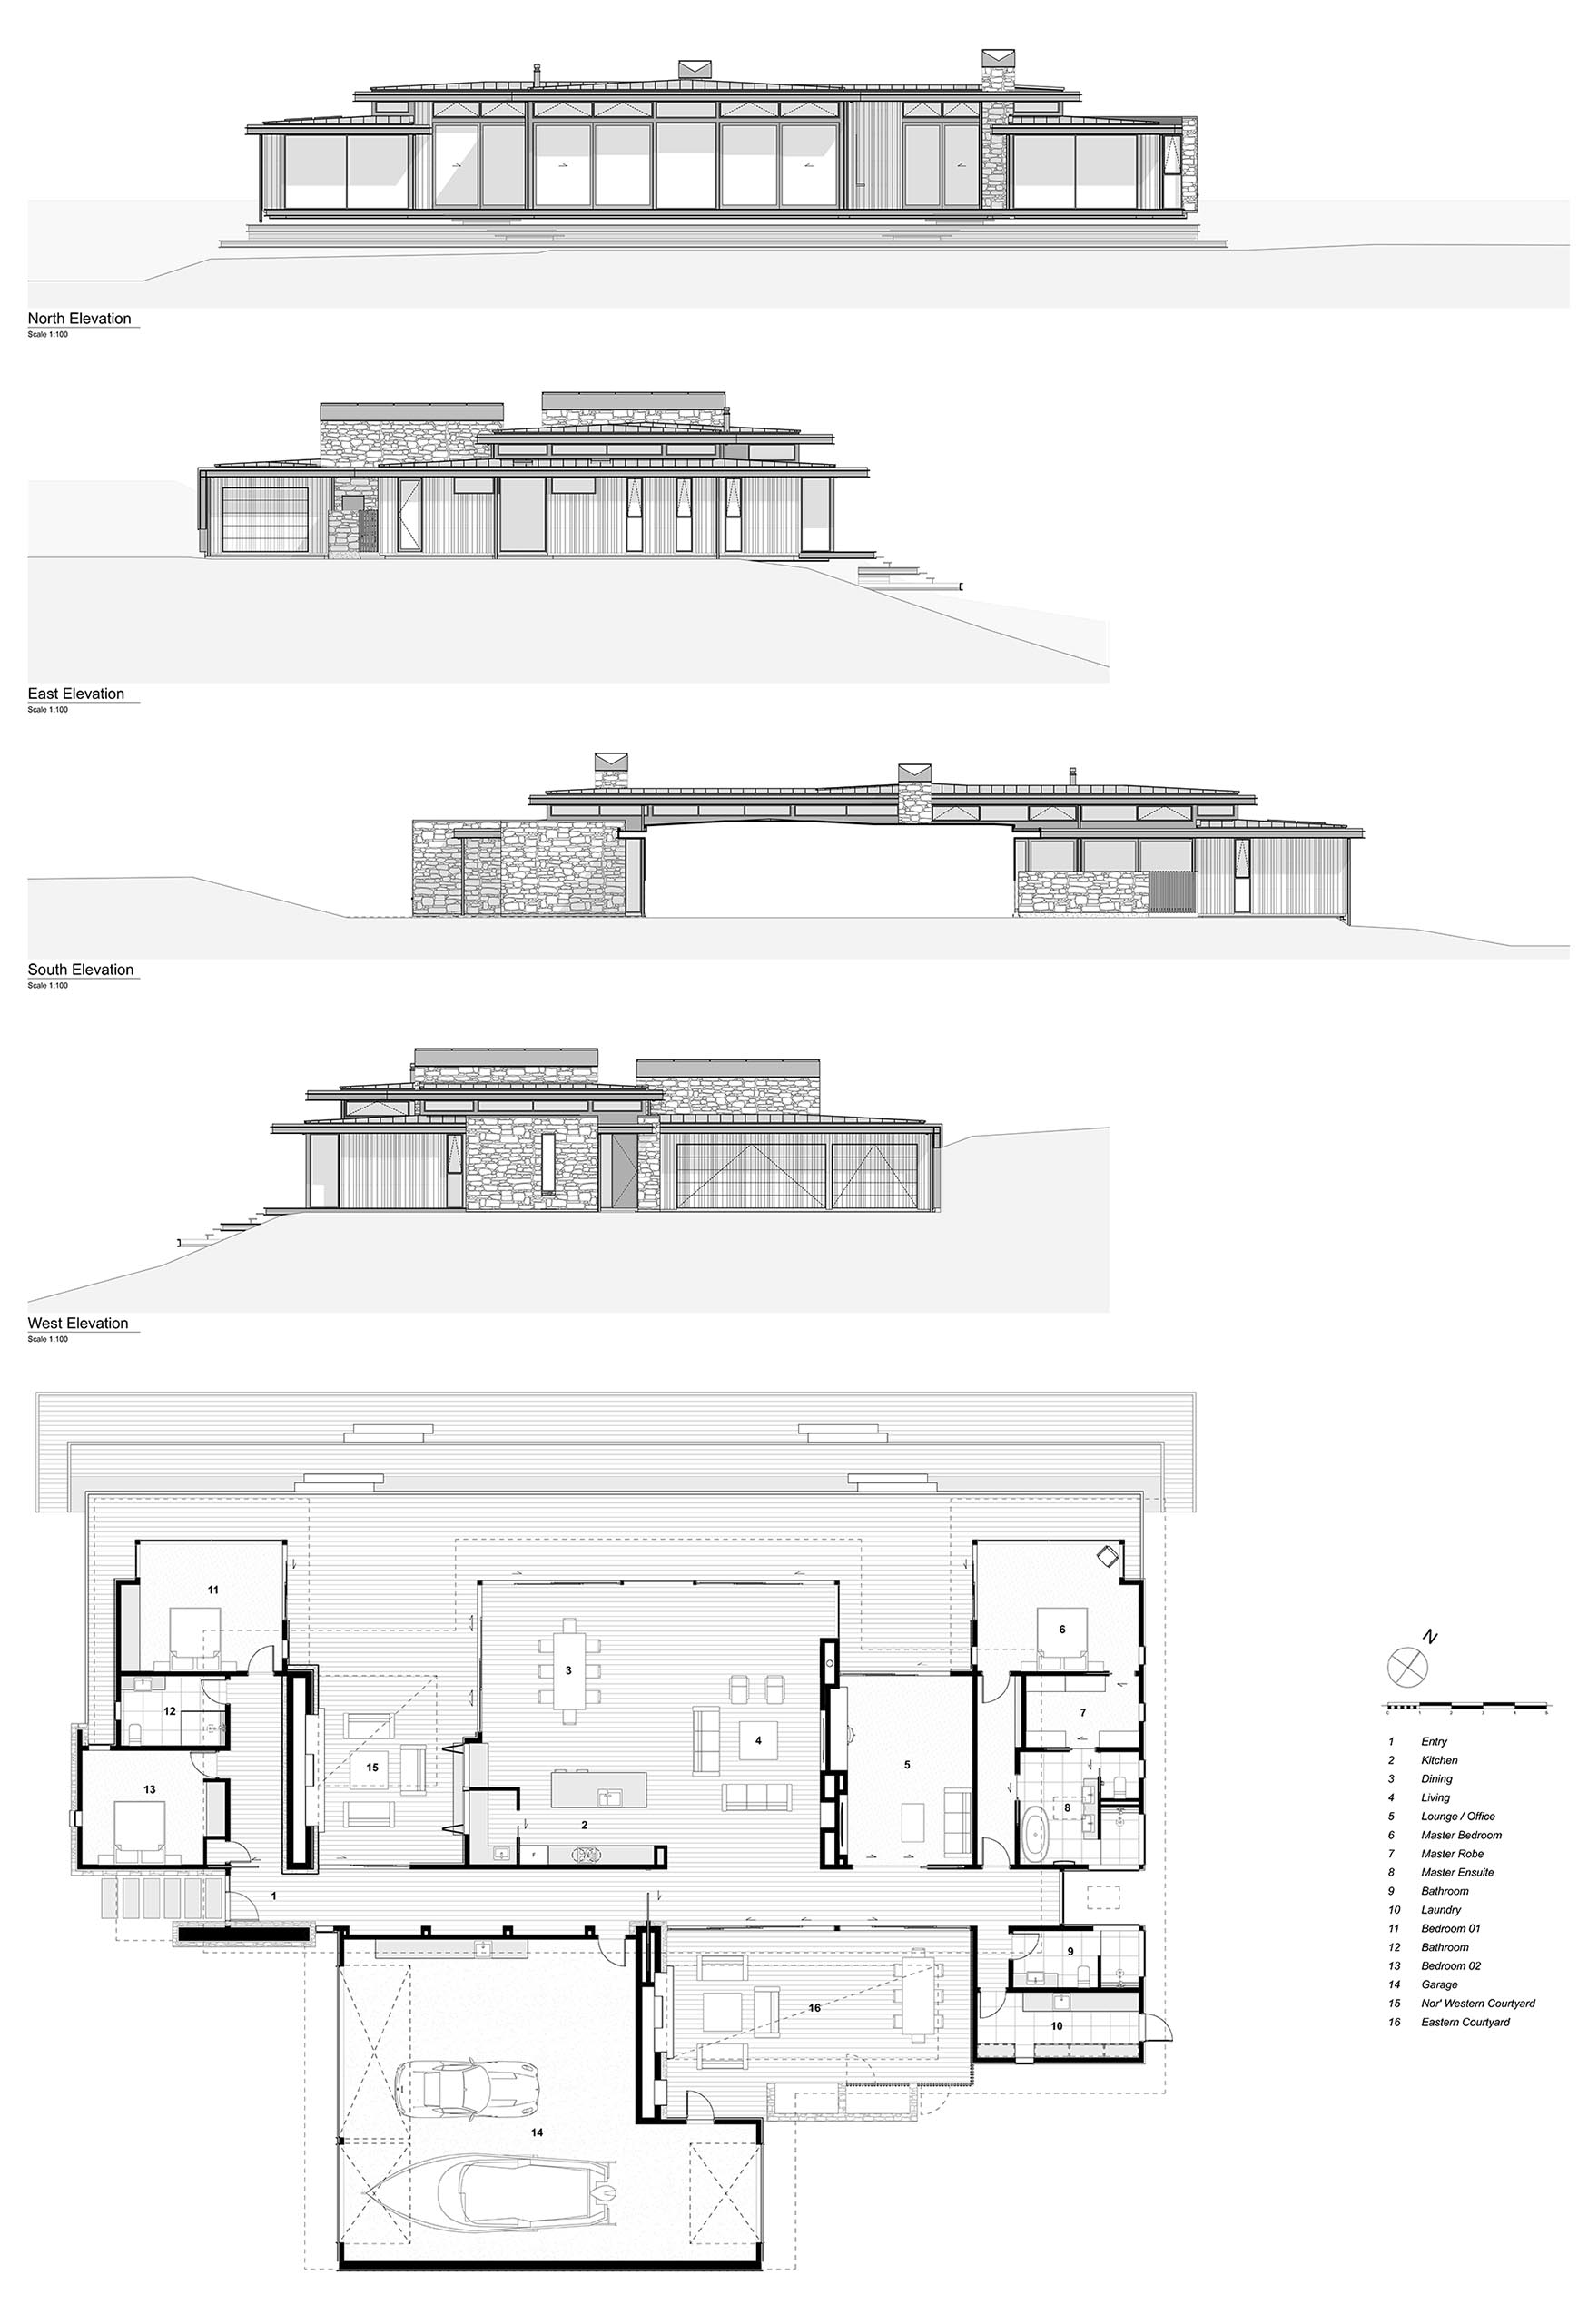 The elevations and floor plan of a modern single storey home.